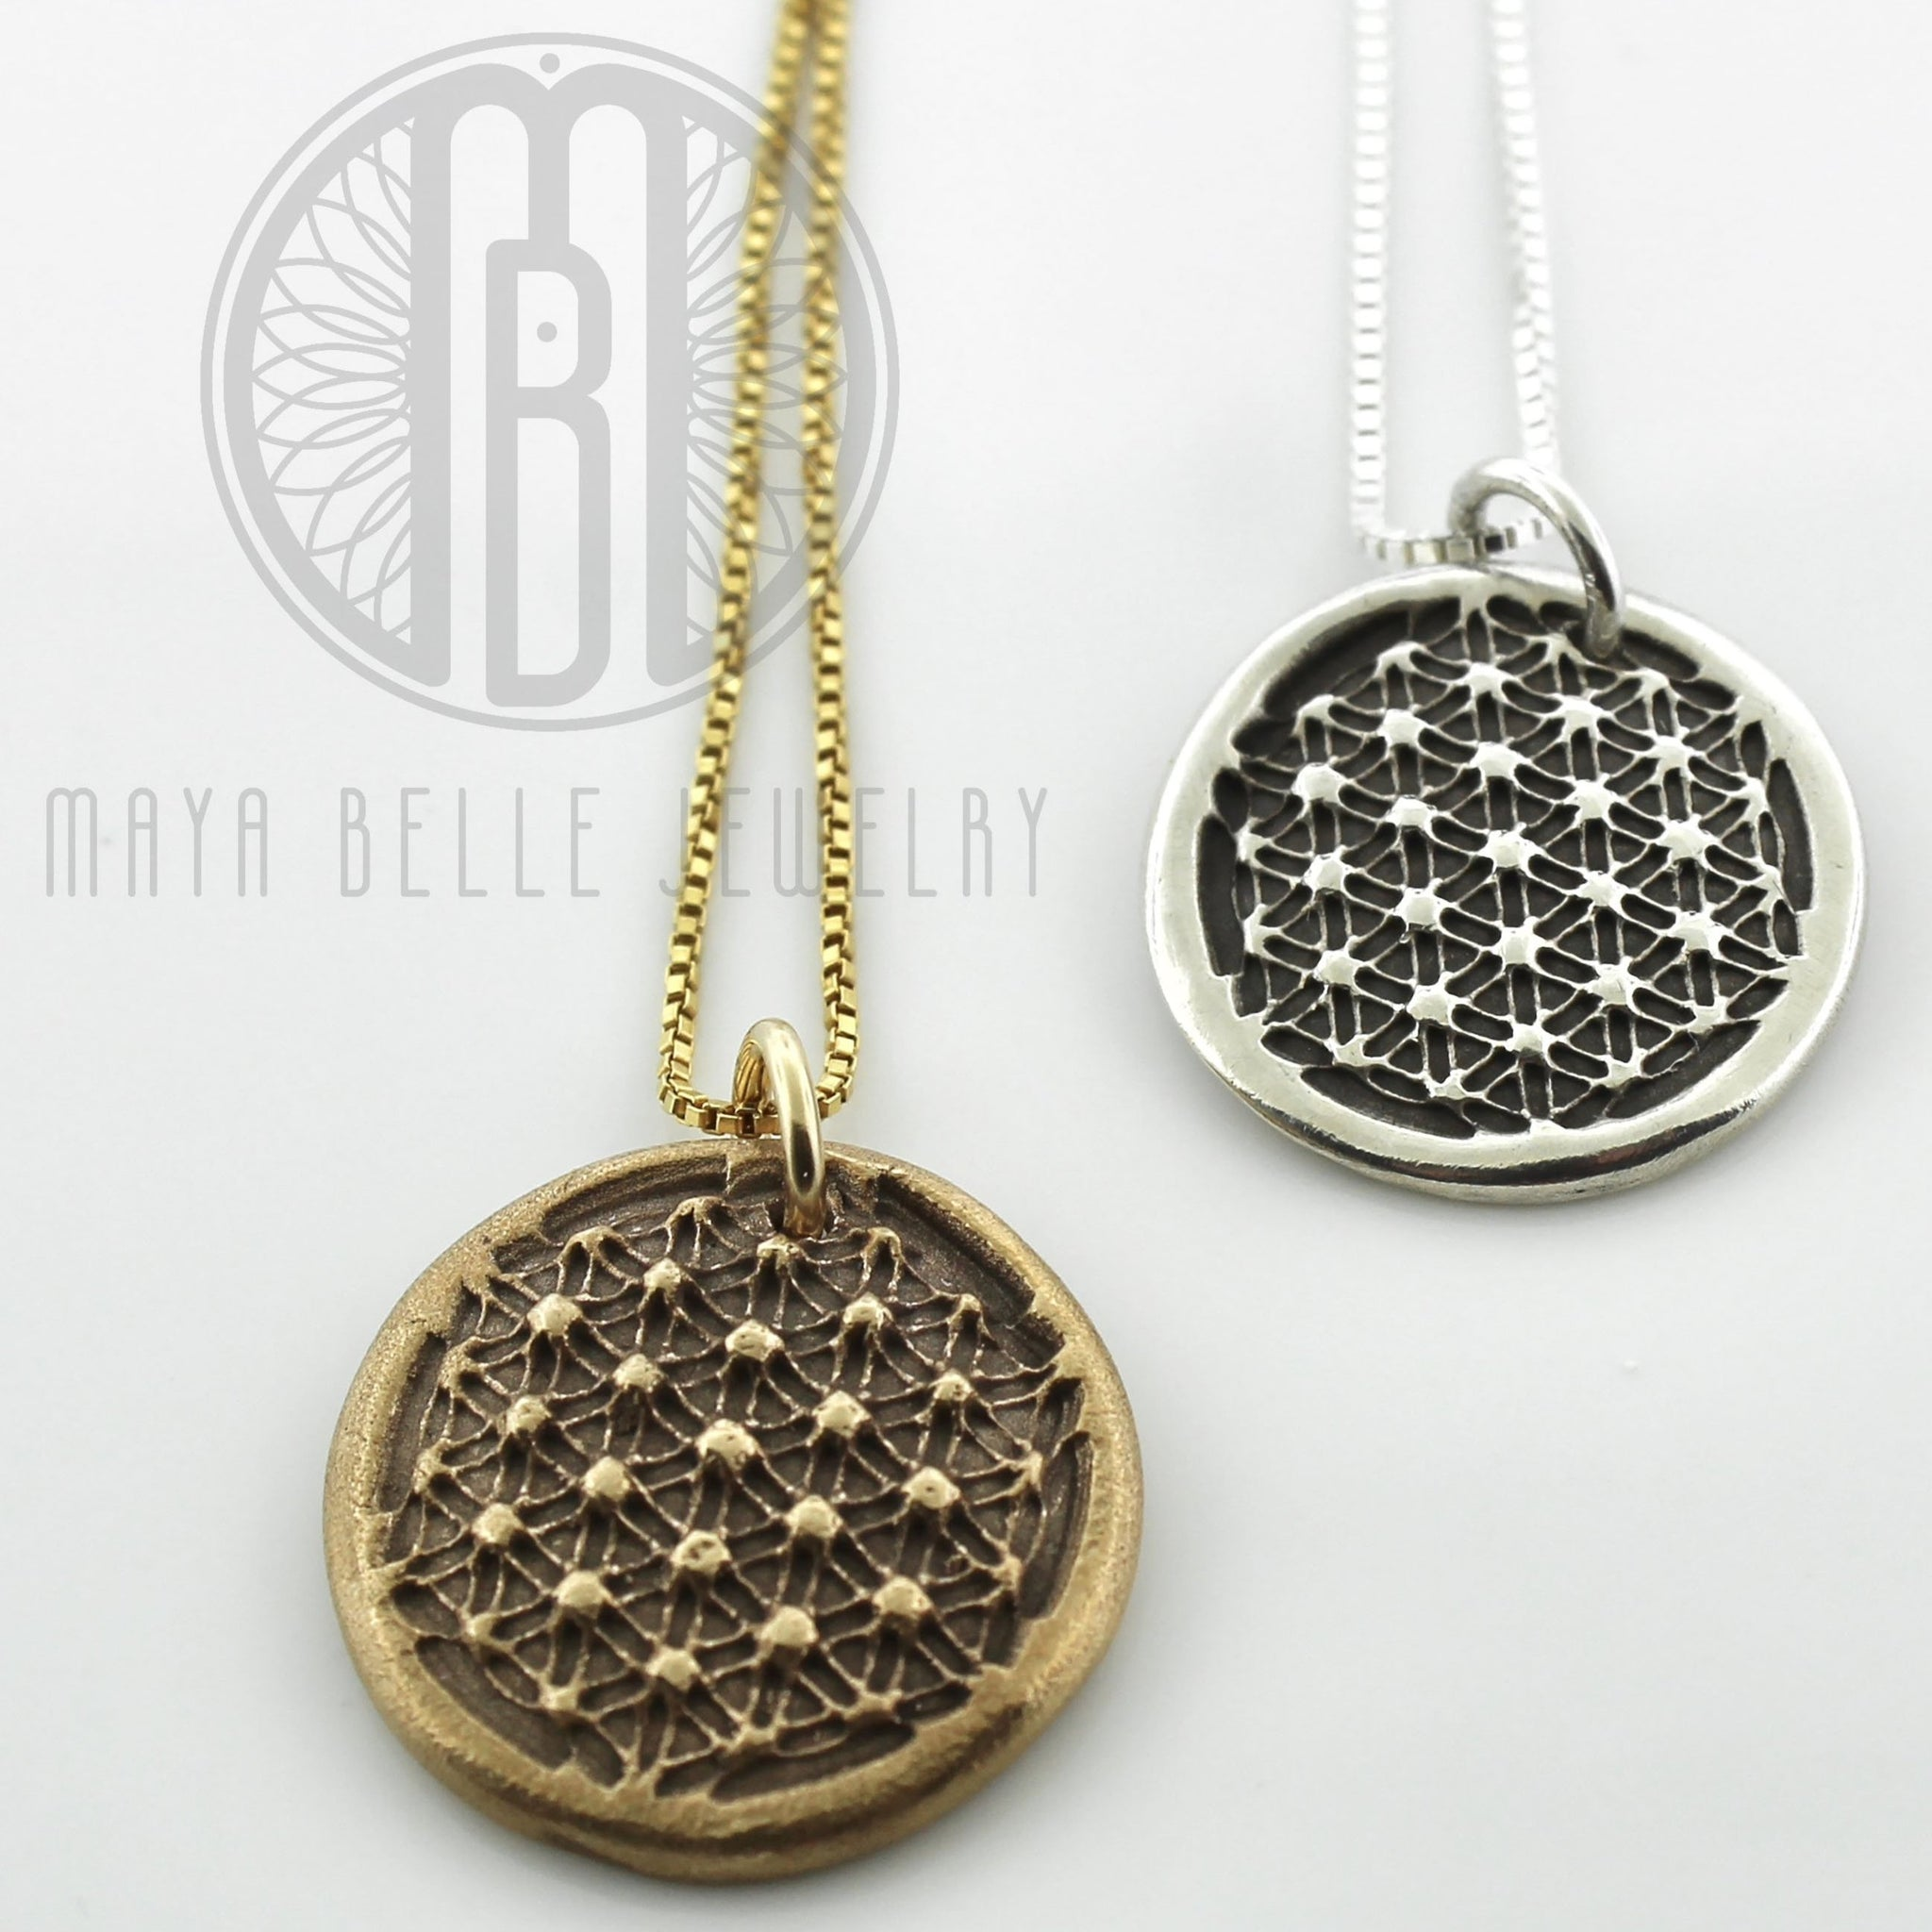 Sacred Geometry pendant • flower of life necklace • special gift - Maya Belle Jewelry